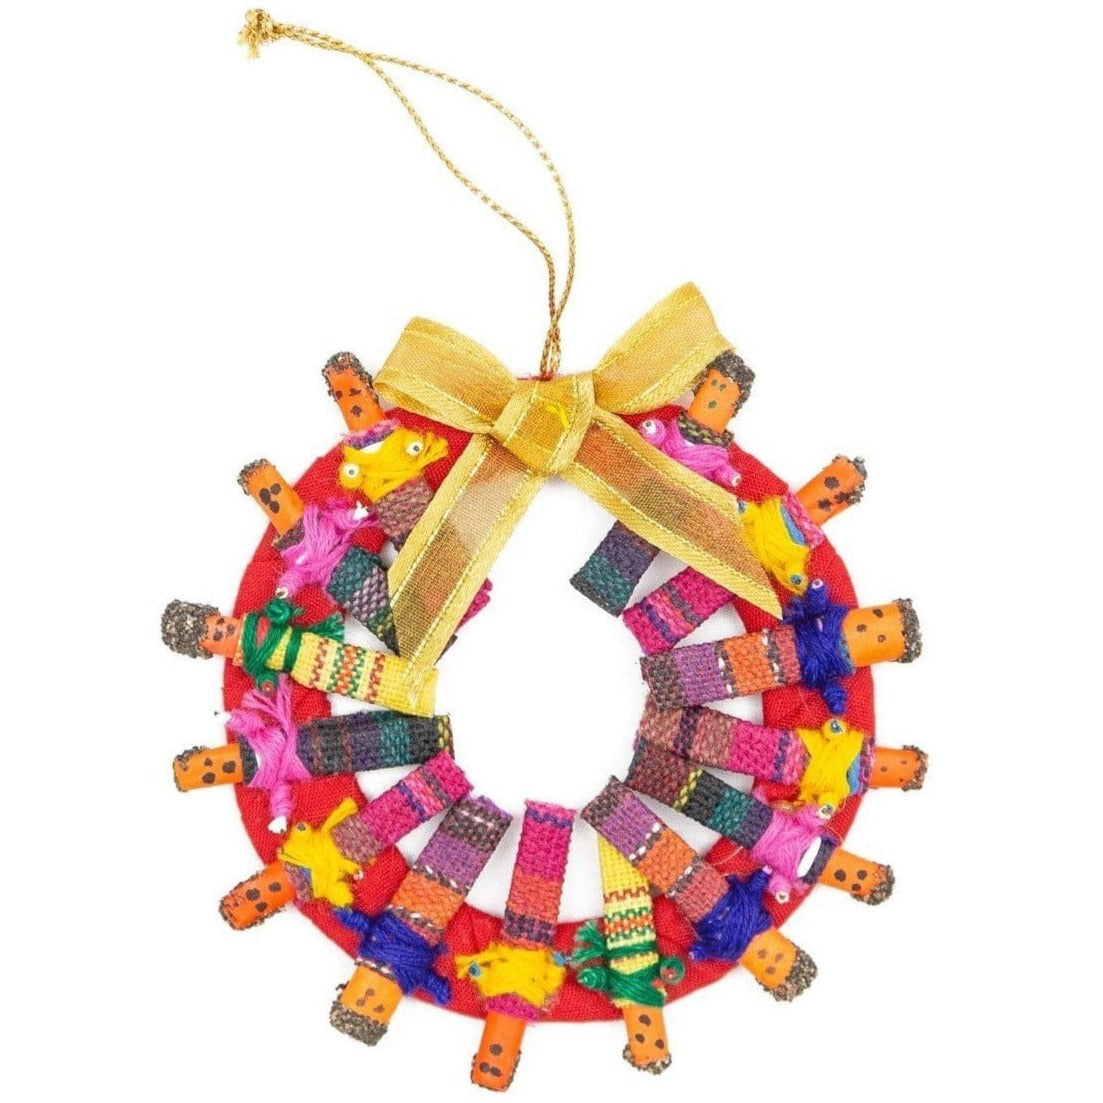 Worry Doll Wreath Ornament ?id=14052069605429